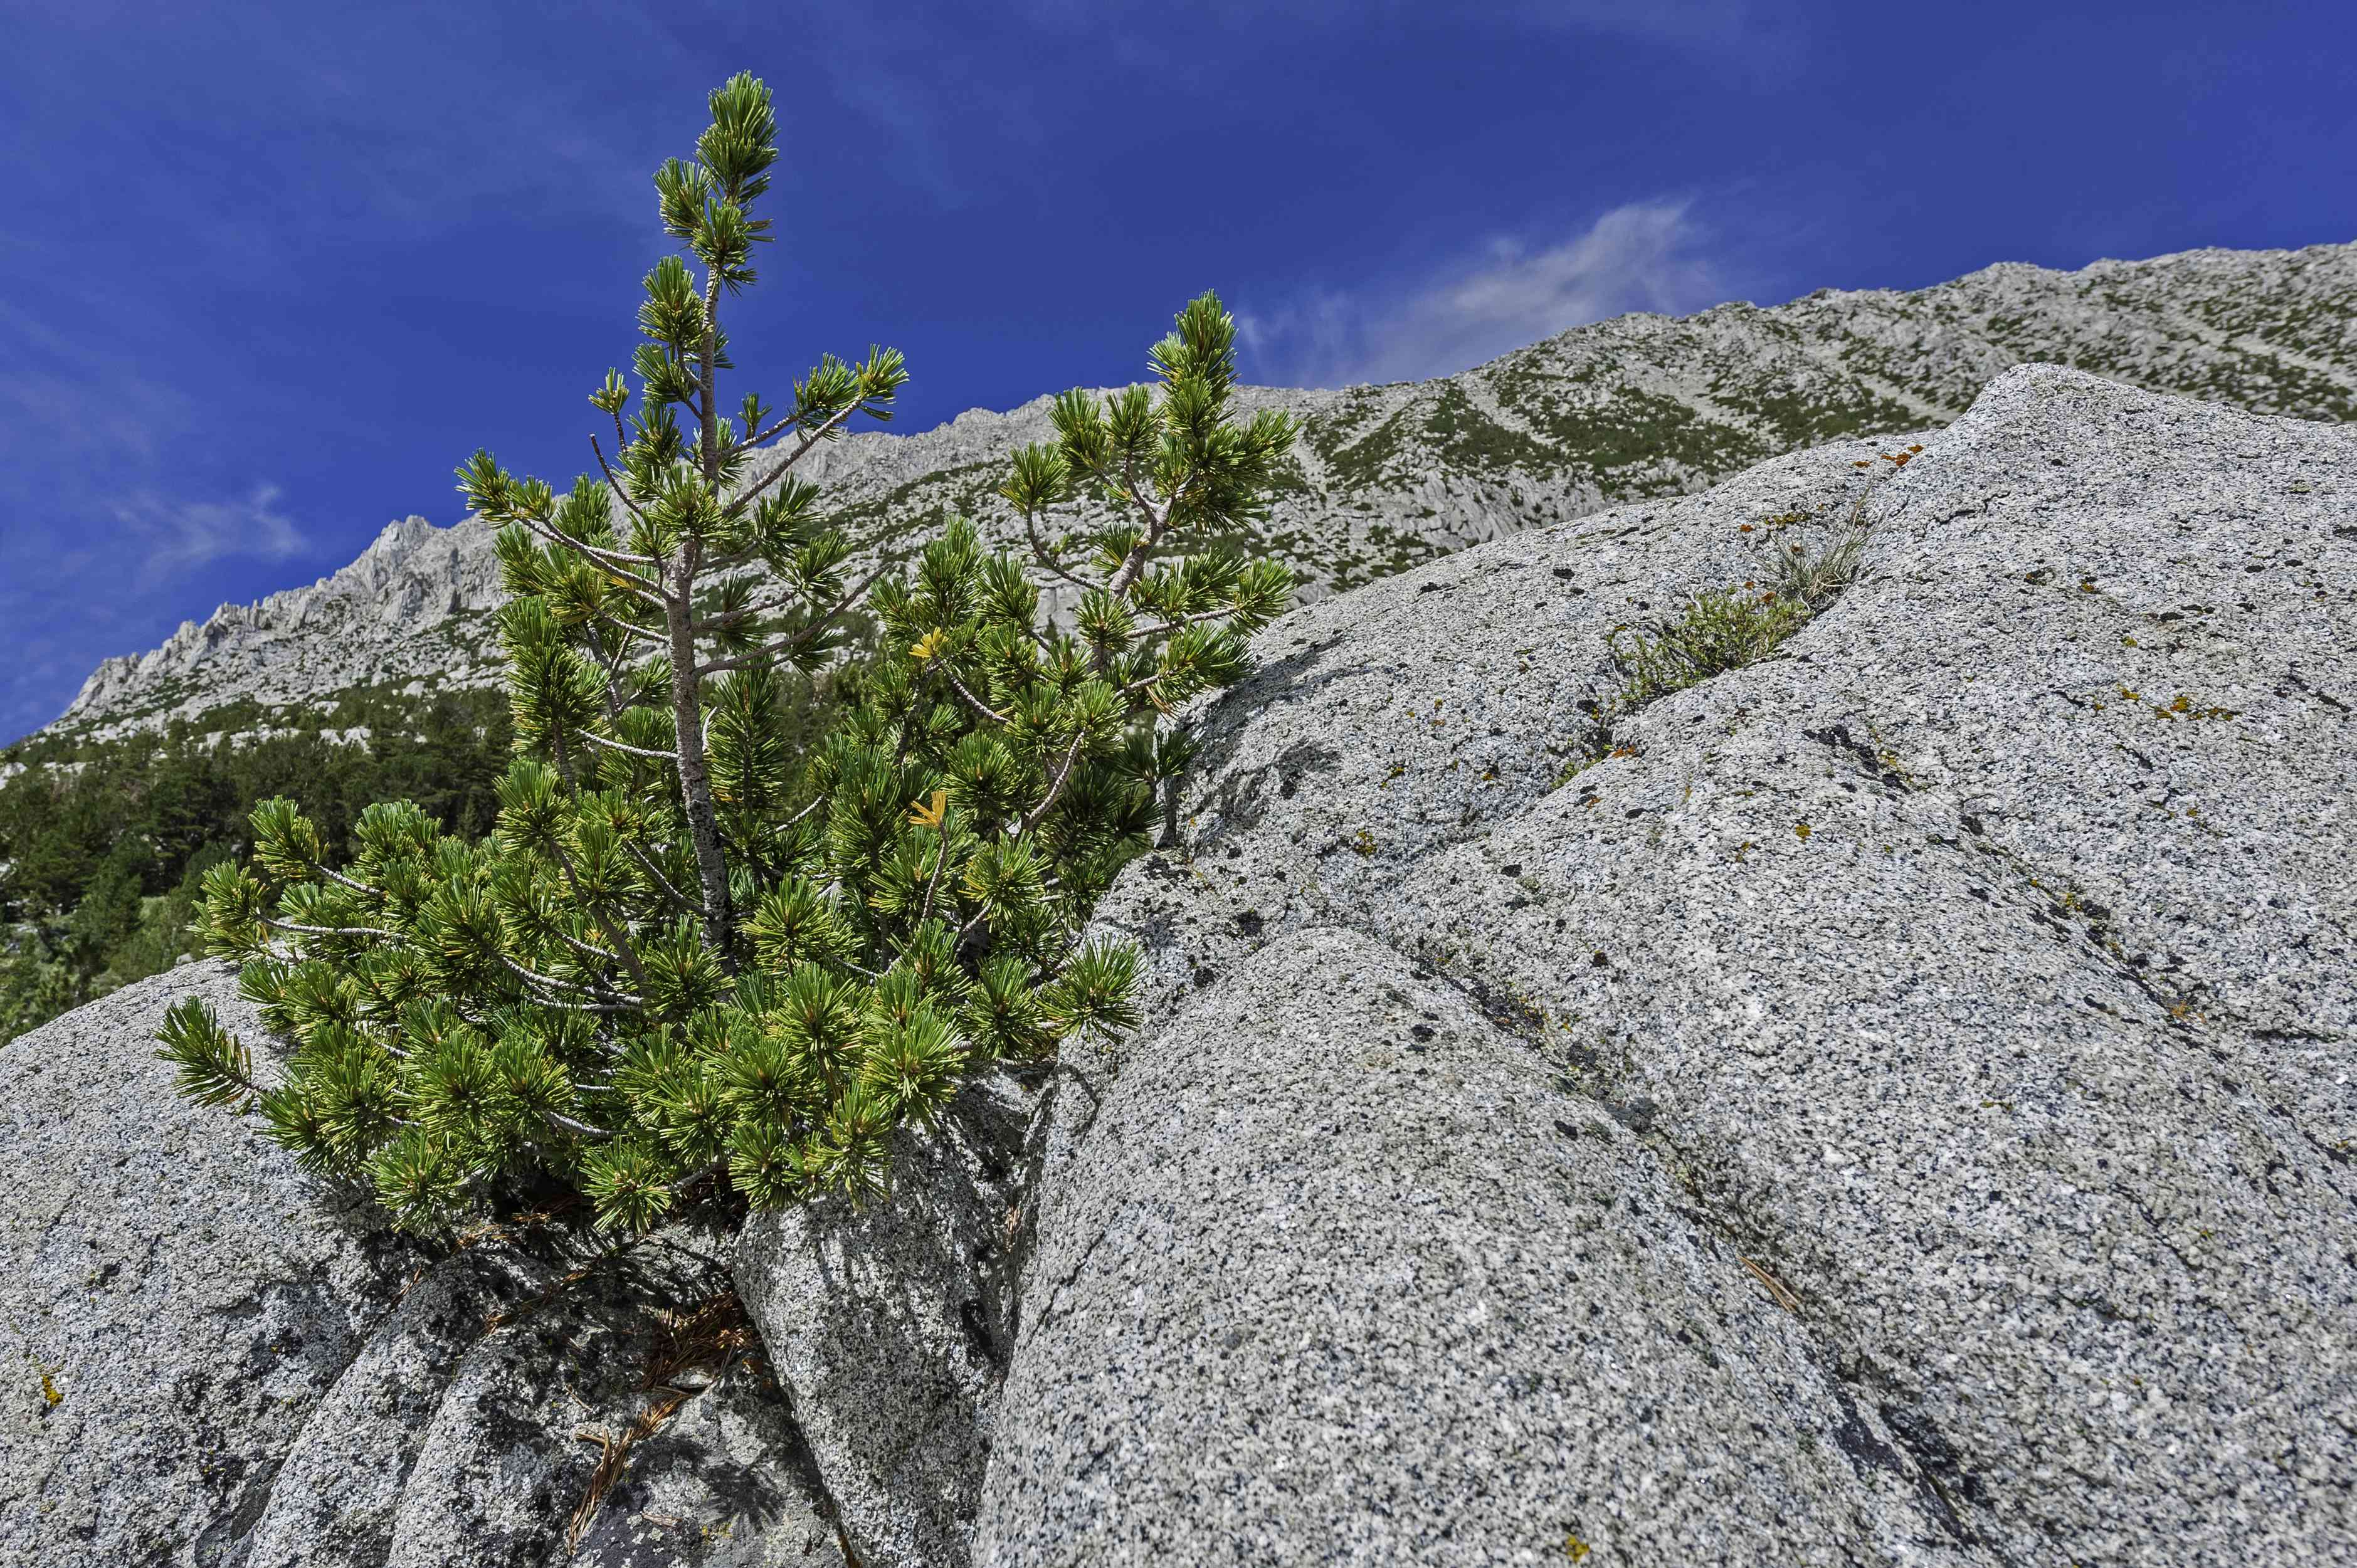 Pinus albicaulis, with many common names including whitebark pine, white pine, pitch pine, scrub pine, and creeping pine, occurs in the mountains of the Western United States and Canada, specifically the subalpine areas of the Sierra Nevada. Rock Creek ar